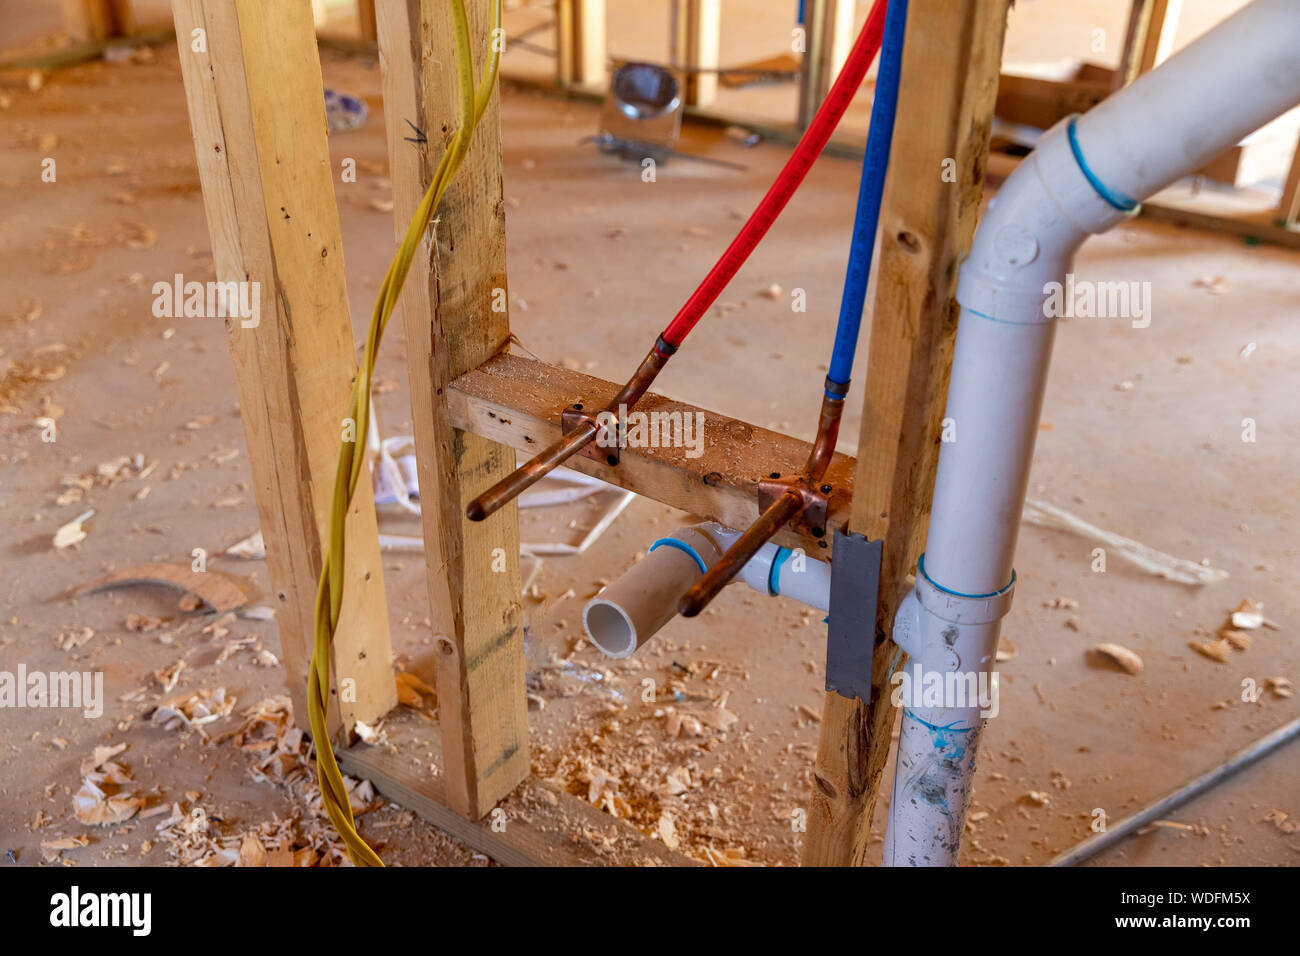 Pex Plumbing And Pvc Pipe Drain In New Home Construction Stock Photo Alamy